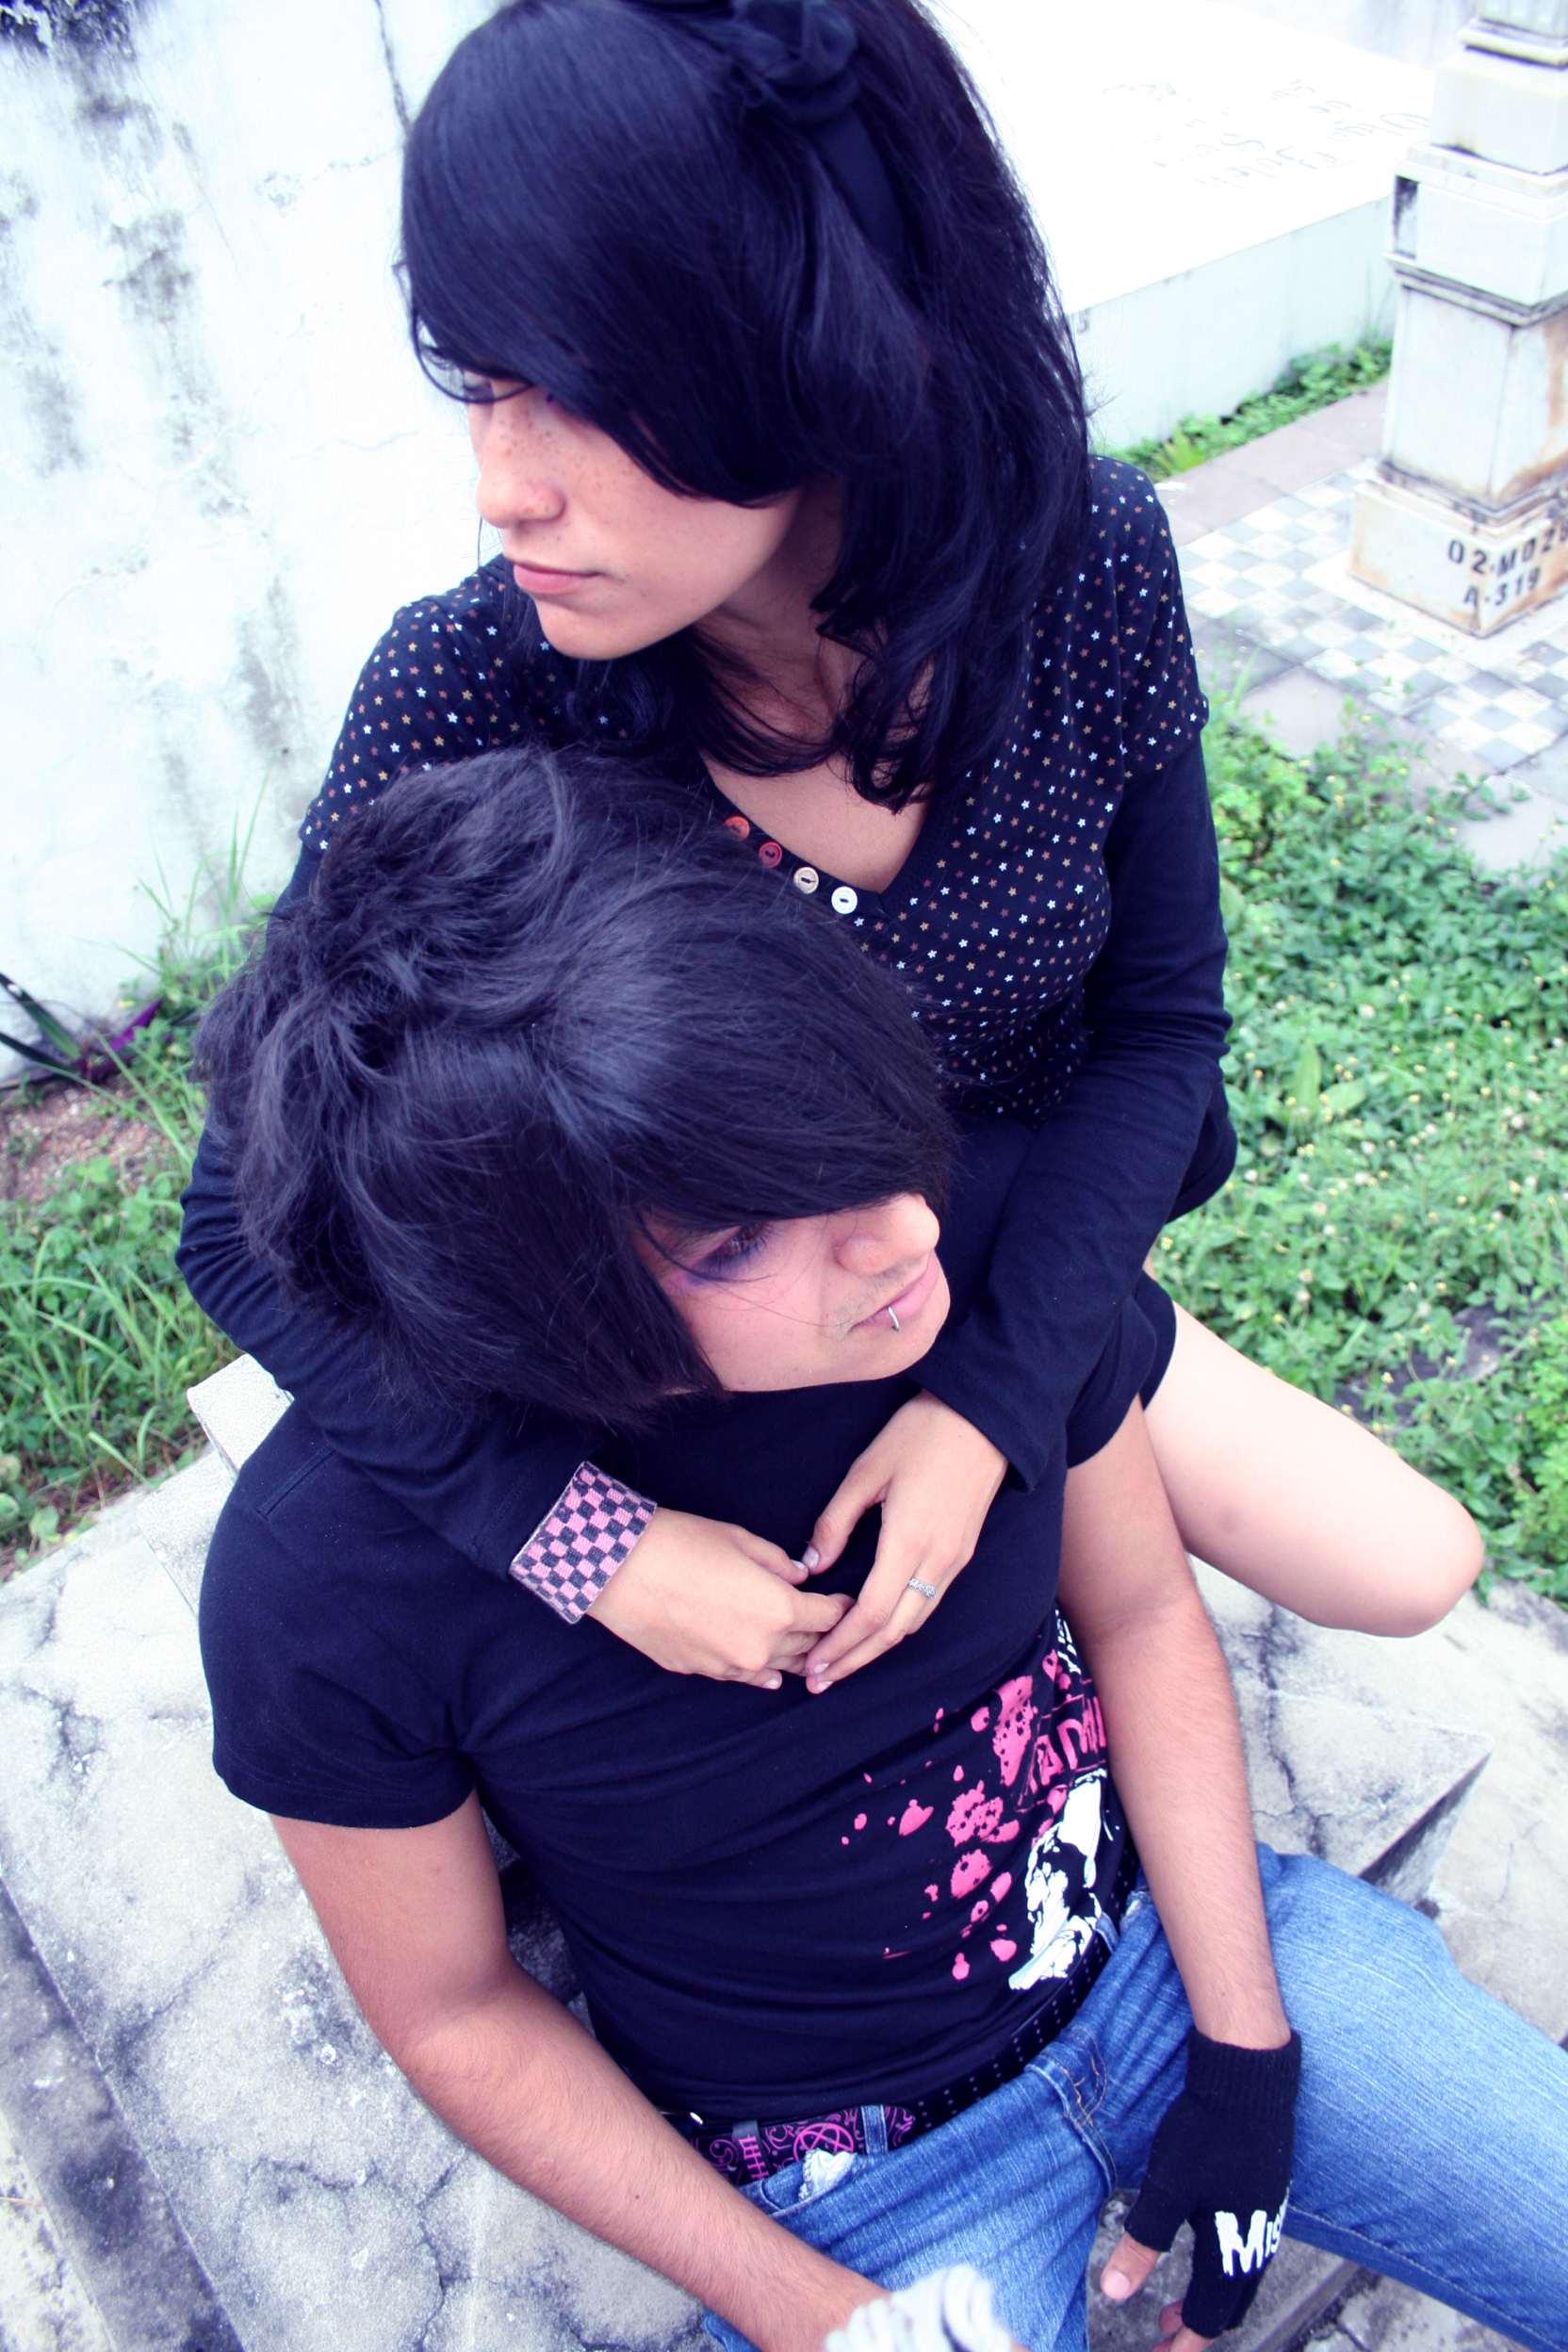 Description Emo boy 02 with Girl.jpg